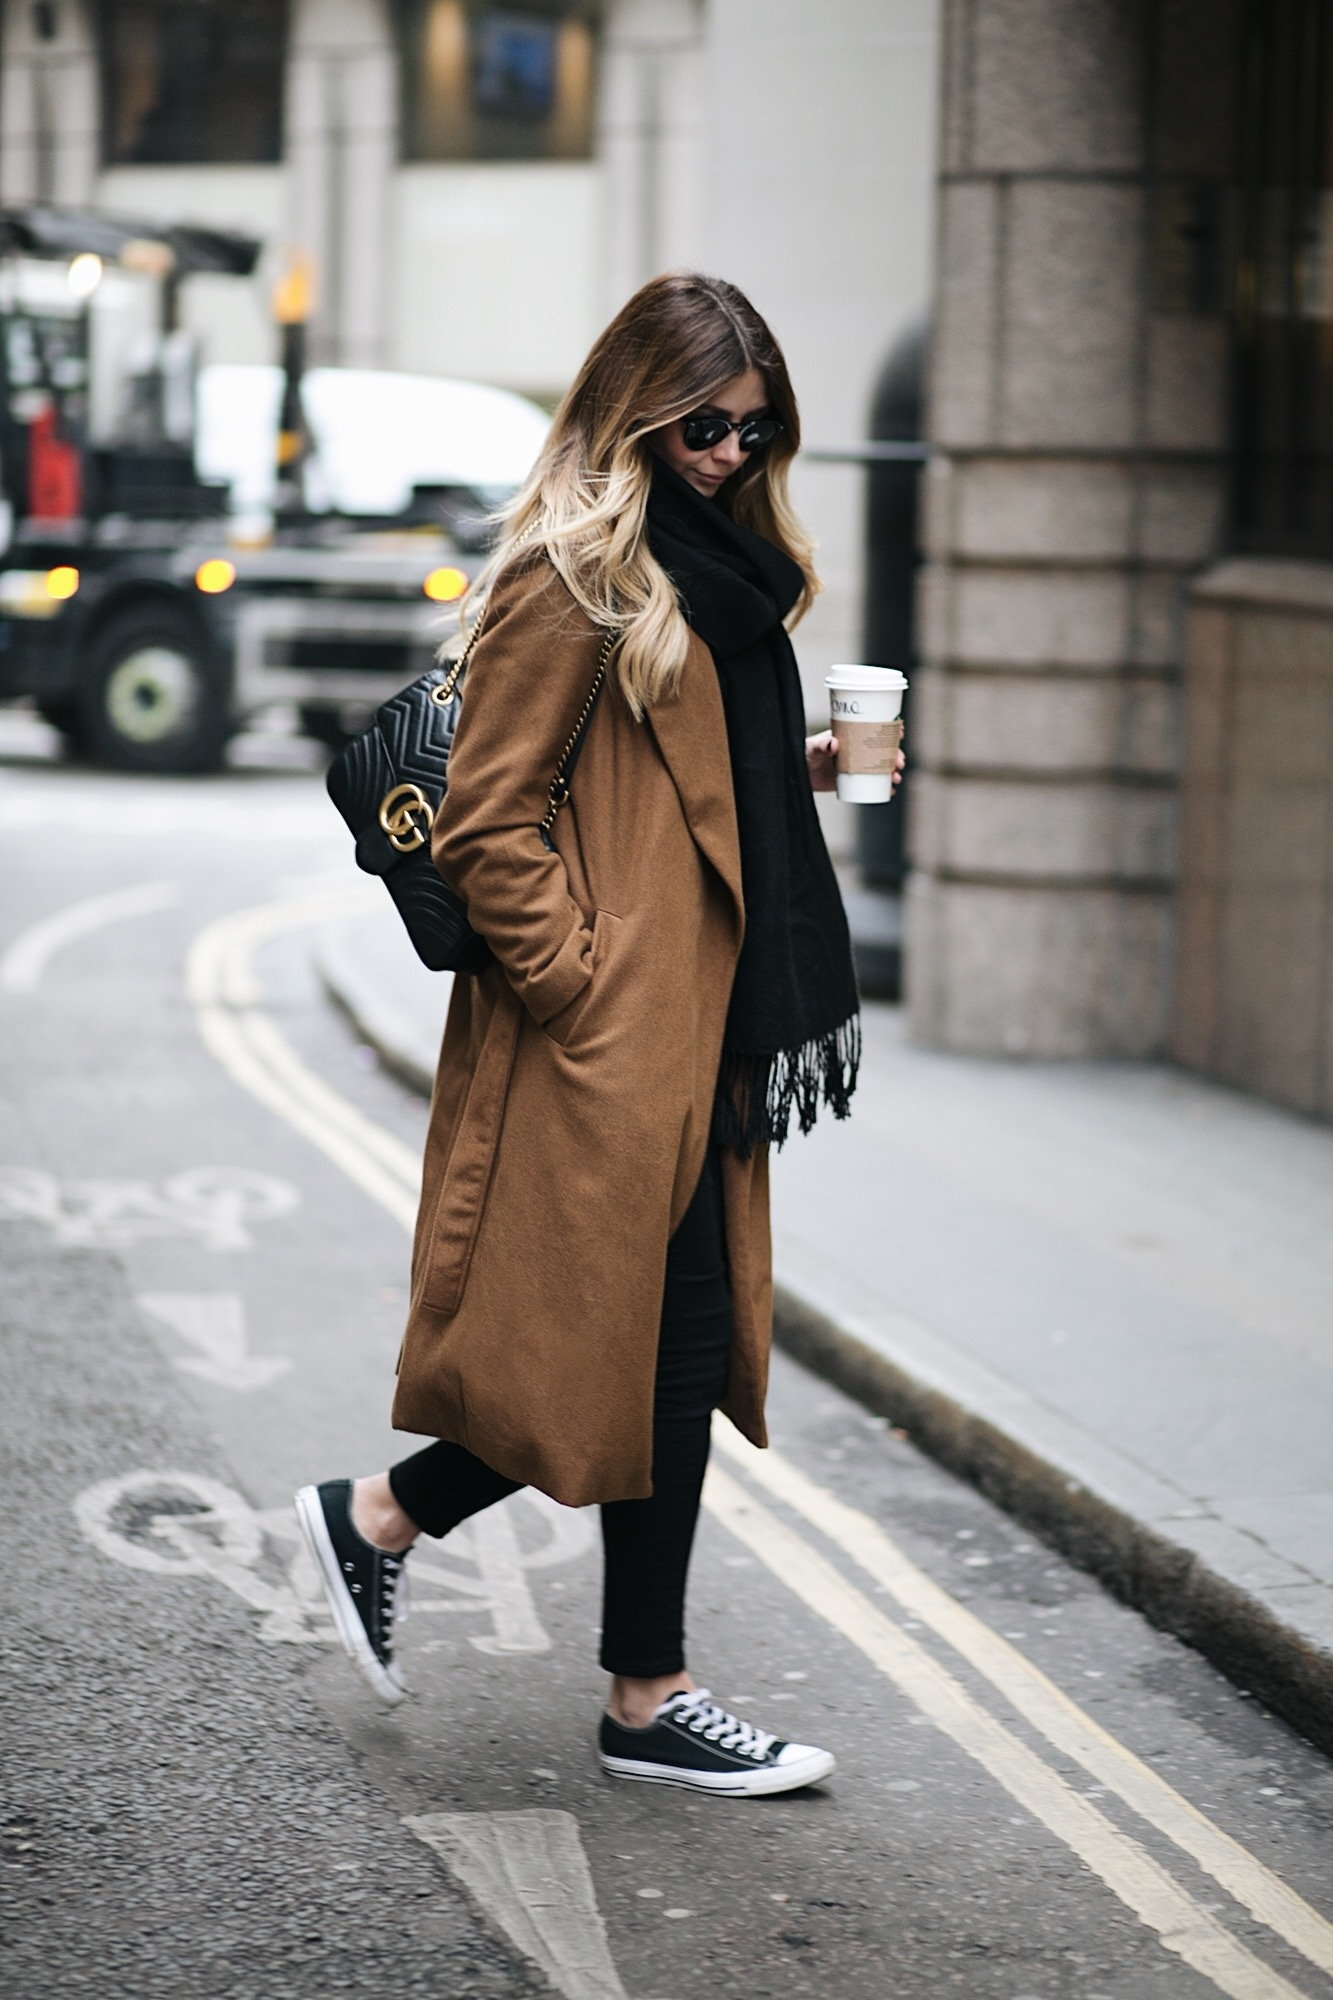 EJ Style Camel Coat, Gucci Marmont bag, Rayban round sunglasses